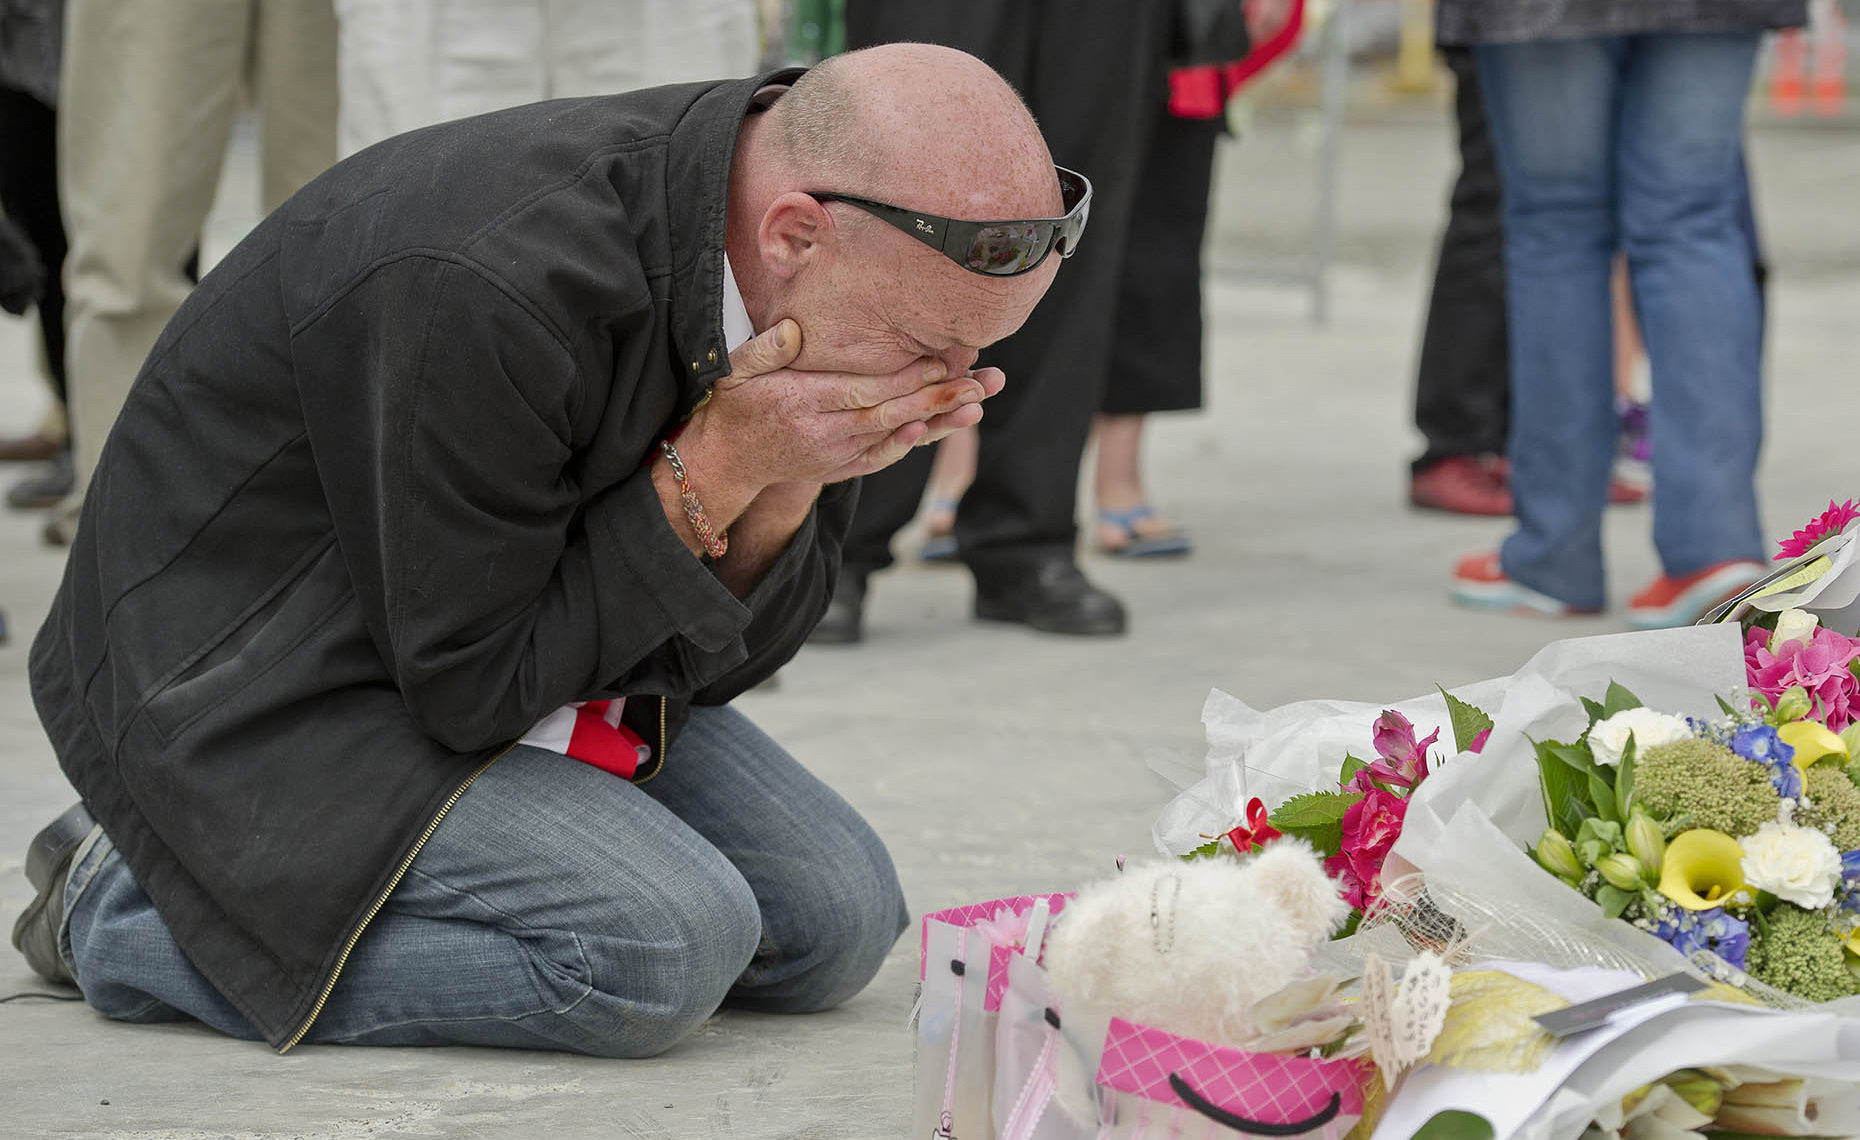 NEW_PhotoReporters_earthquake-memorial-service_Christchurch_NZ